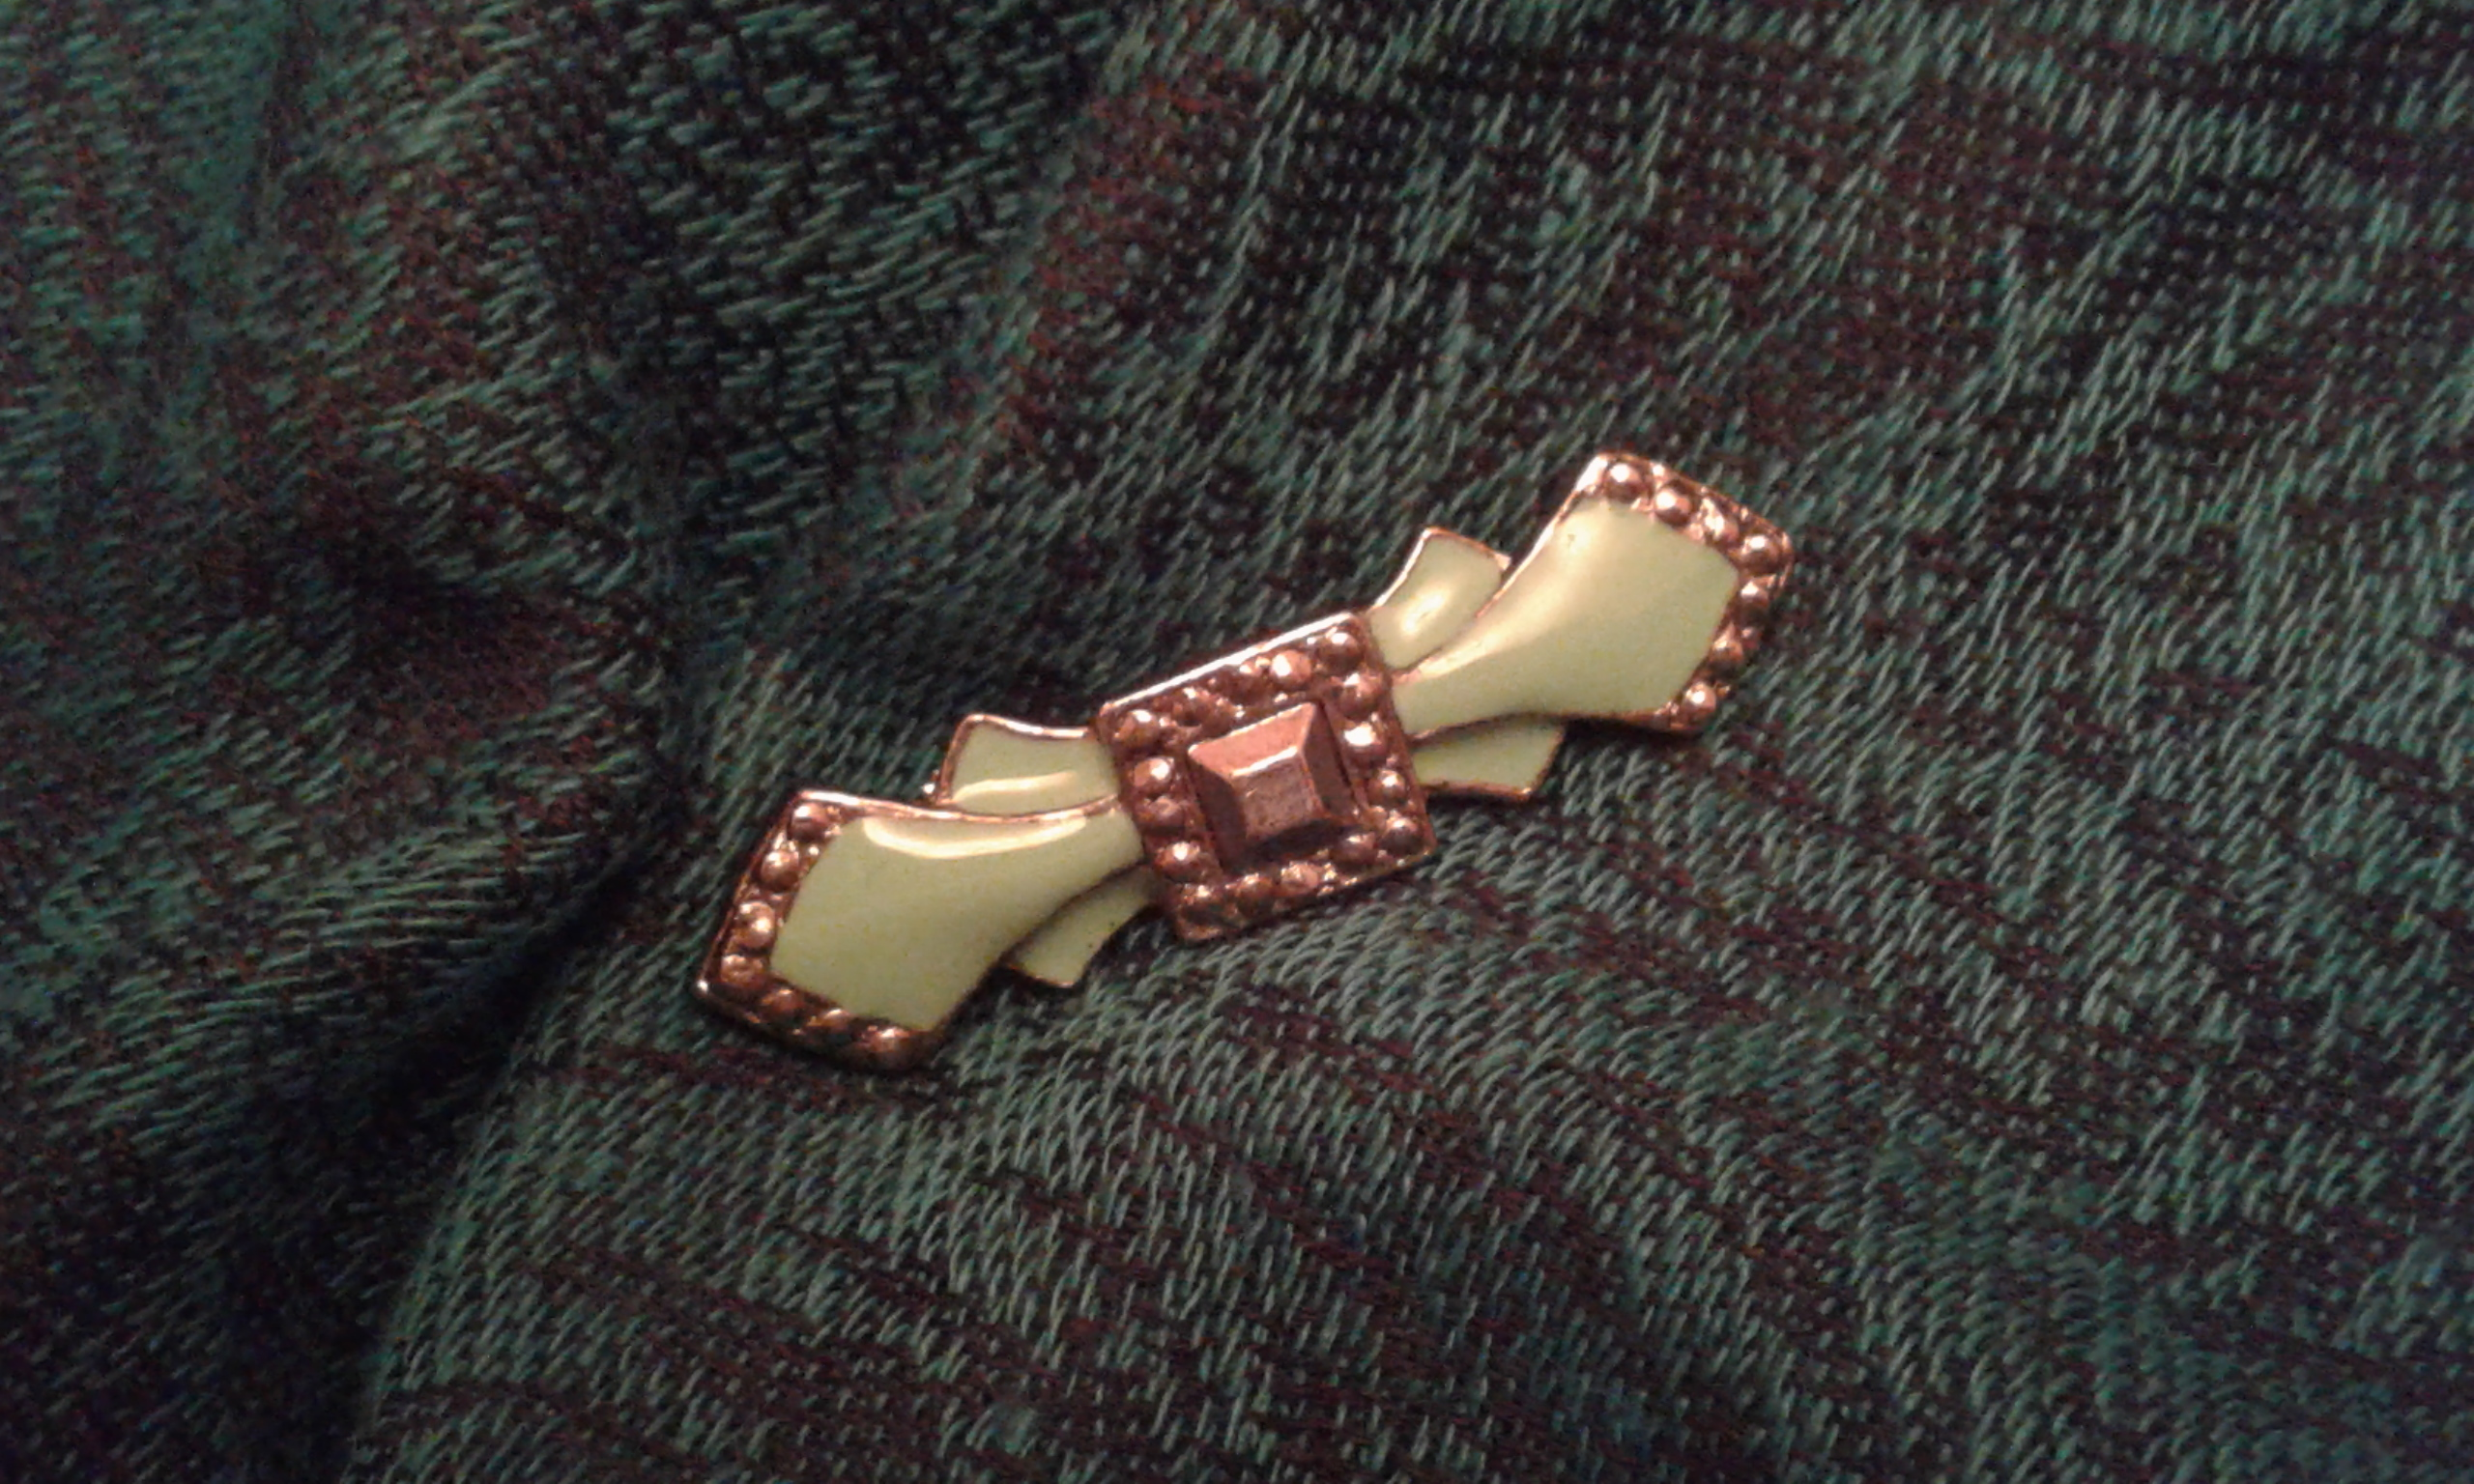 A green antique brooch on a cashmere shawl